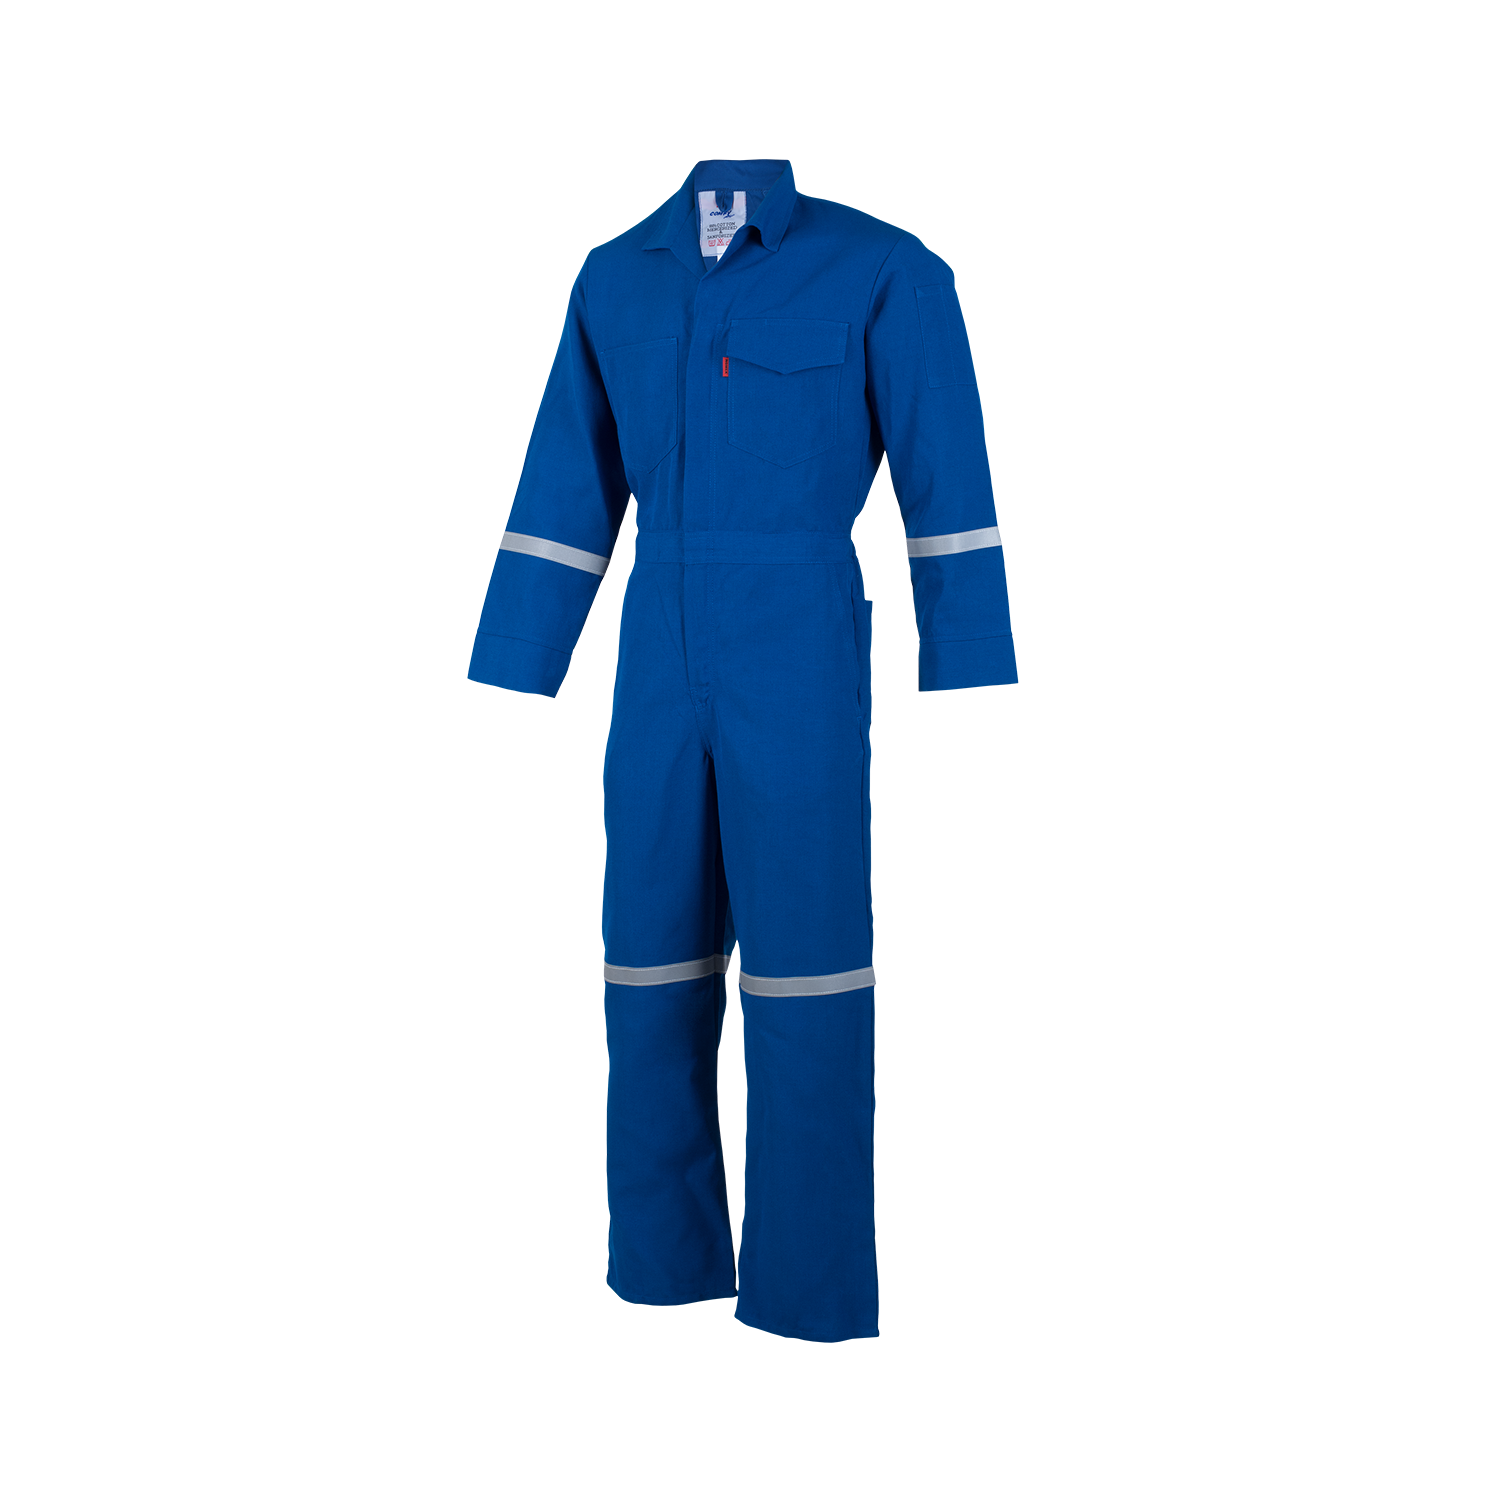 719dc46f2e75 Nomex III A - RB – Fire Retardant Coverall - Products